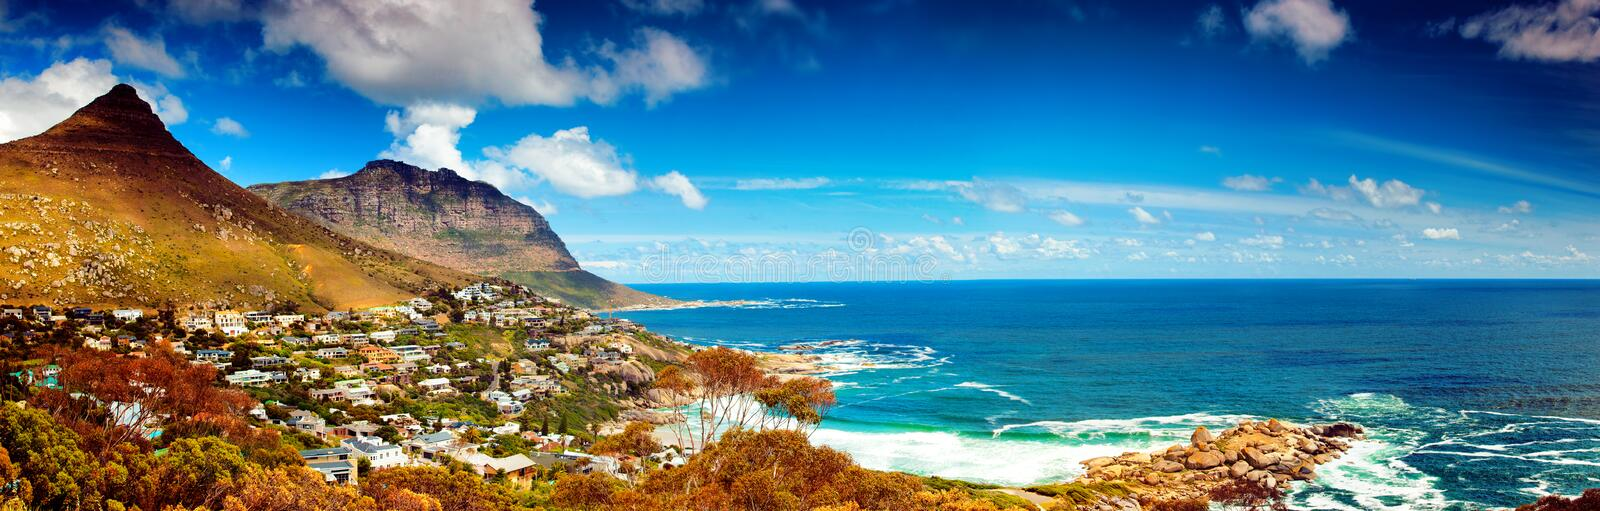 Cape Town city panoramic image stock image